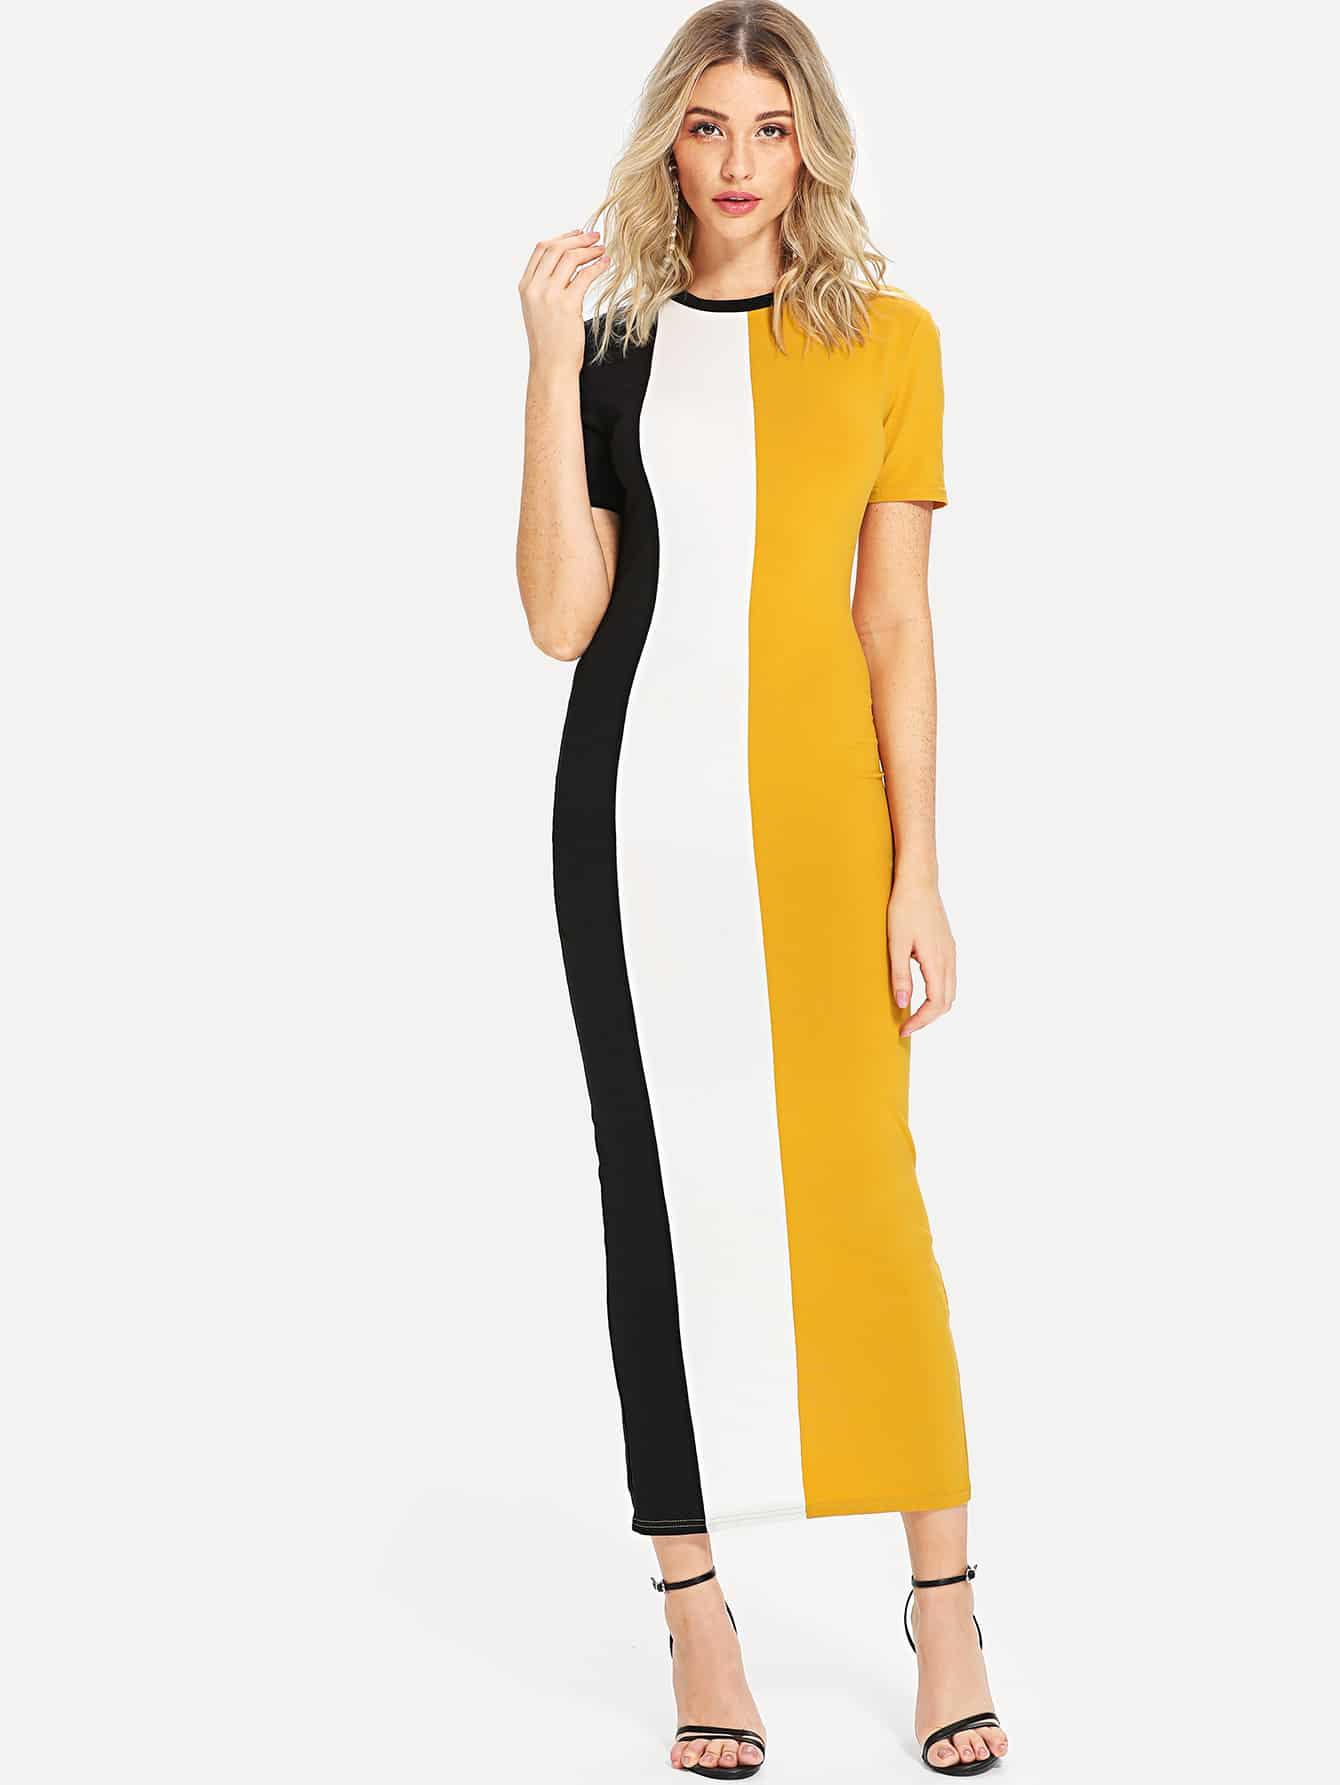 Cut And Sew Slit Back Fitted Dress buttoned closure back cut and sew cap sleeve top